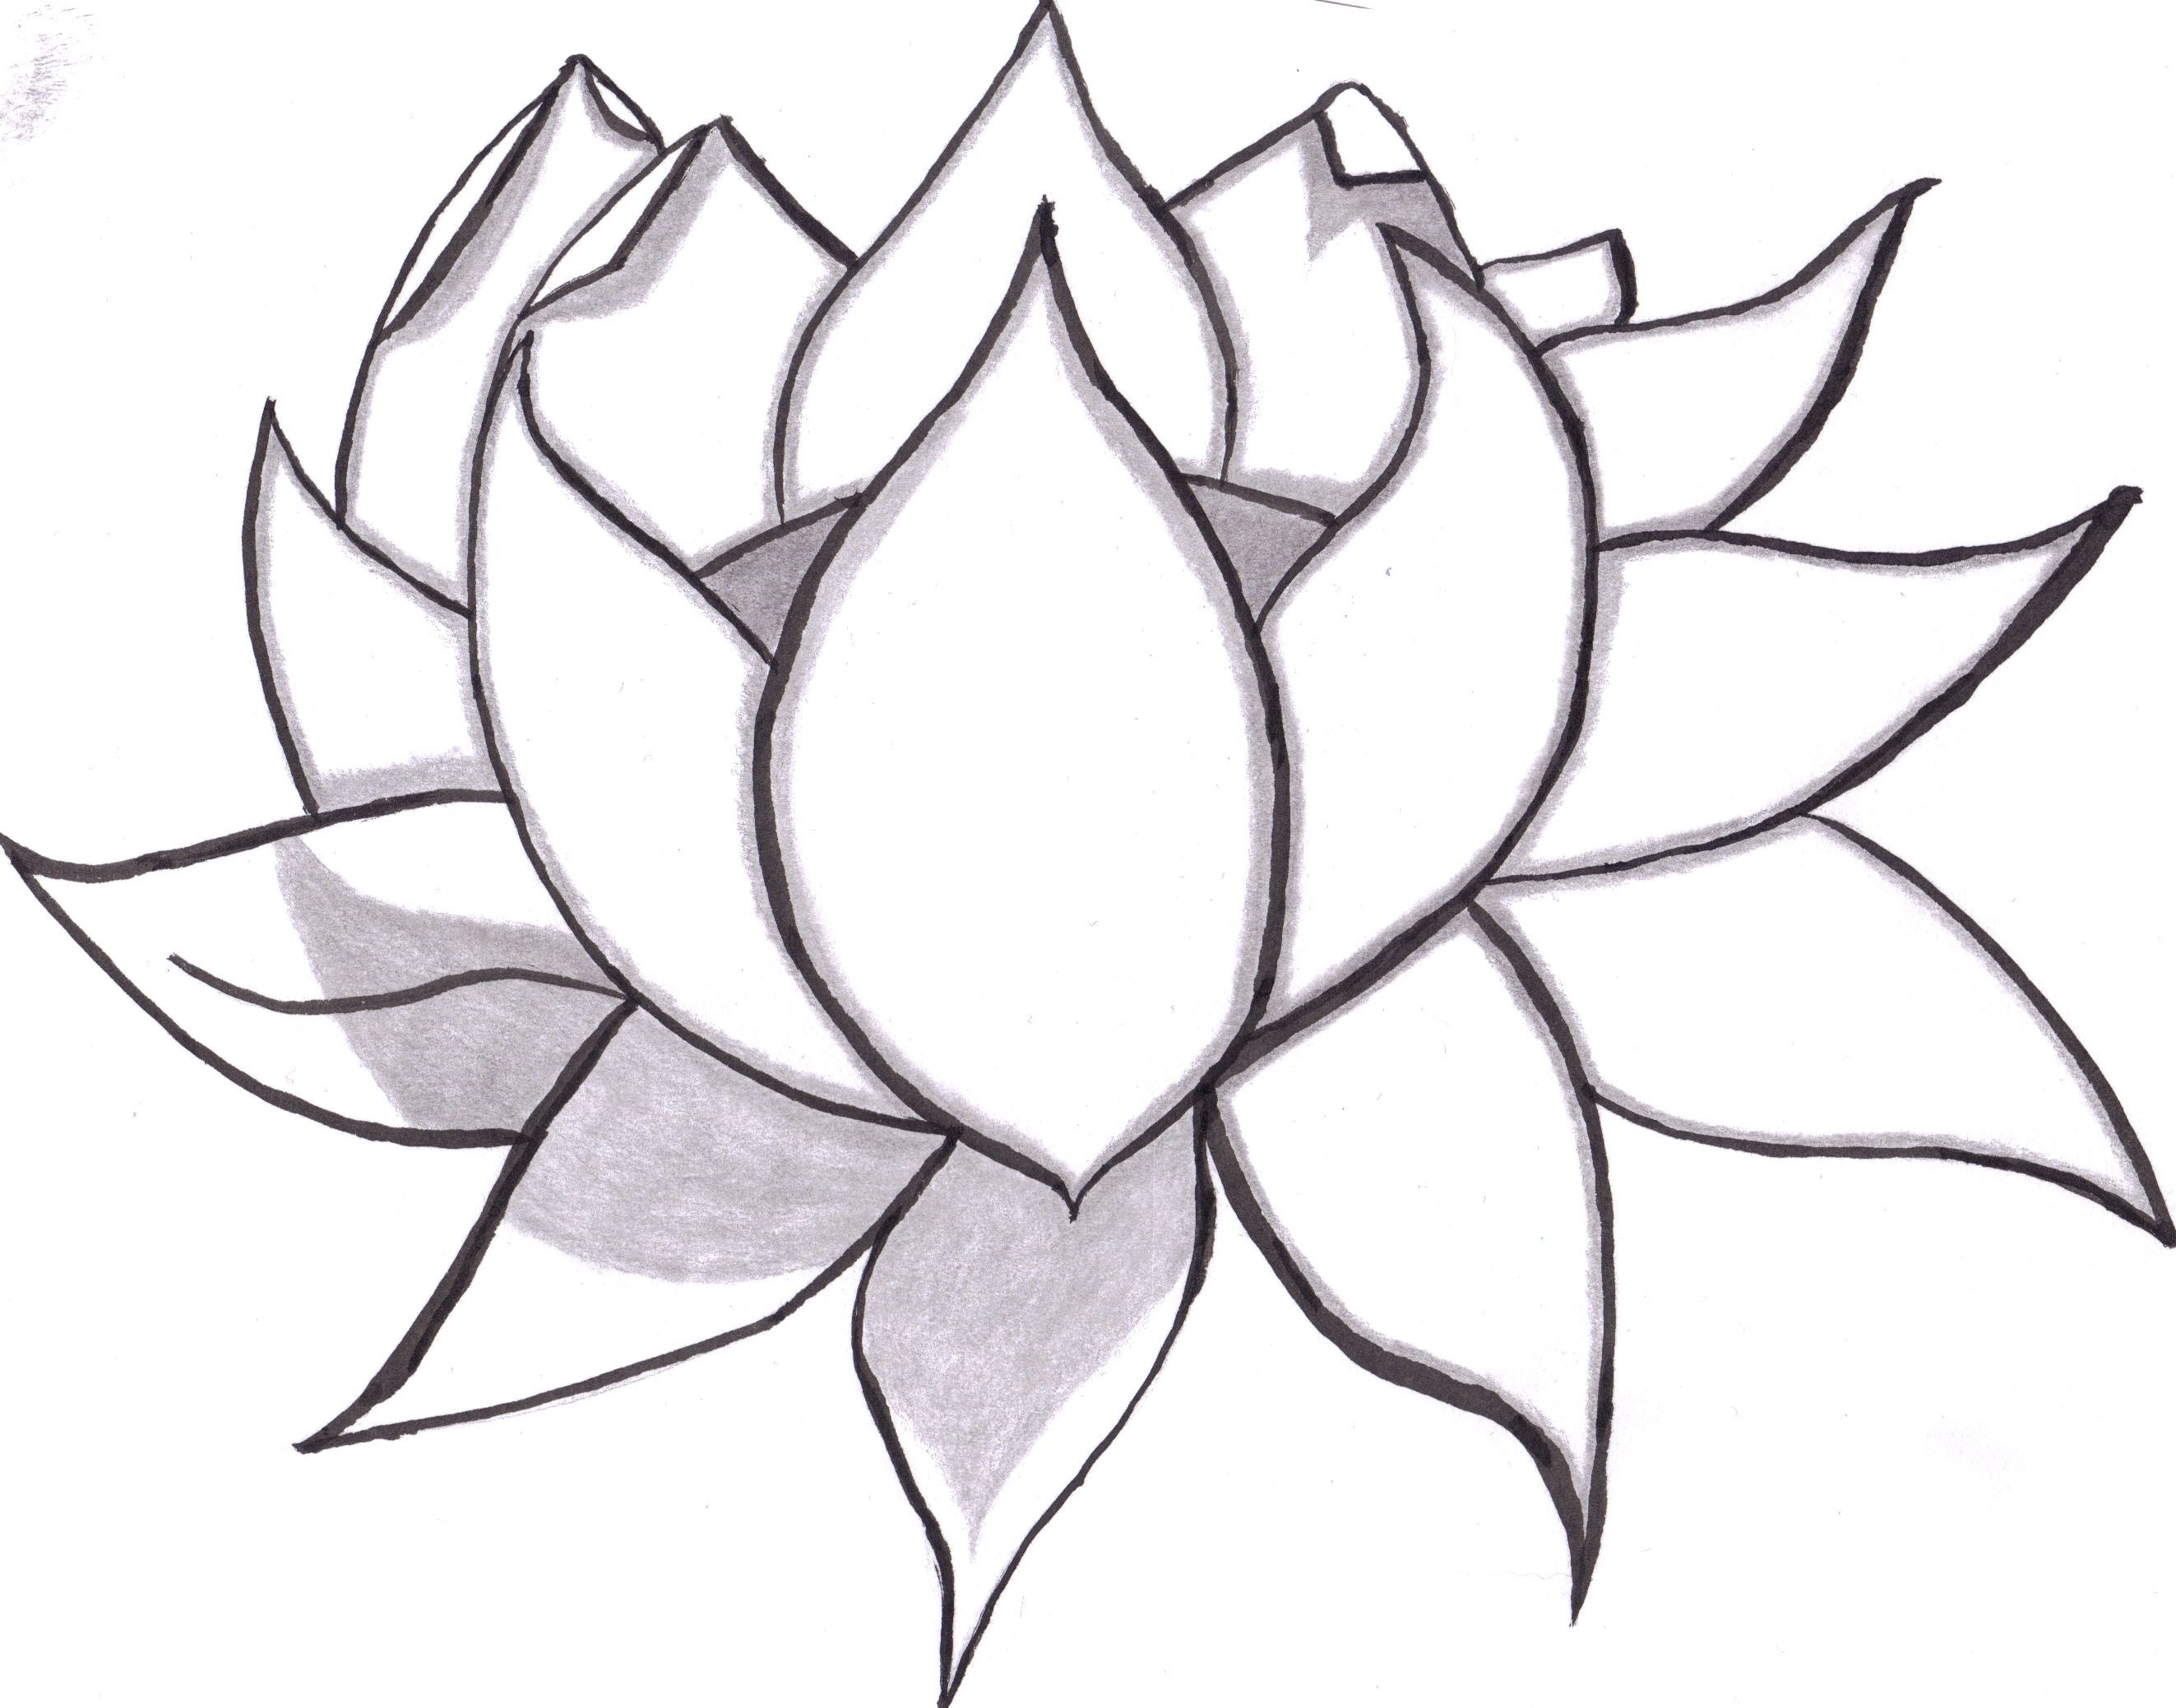 Flowers Drawings In Pencil Free Large Images Easy Flower Drawings Pencil Drawings Of Flowers Simple Flower Drawing